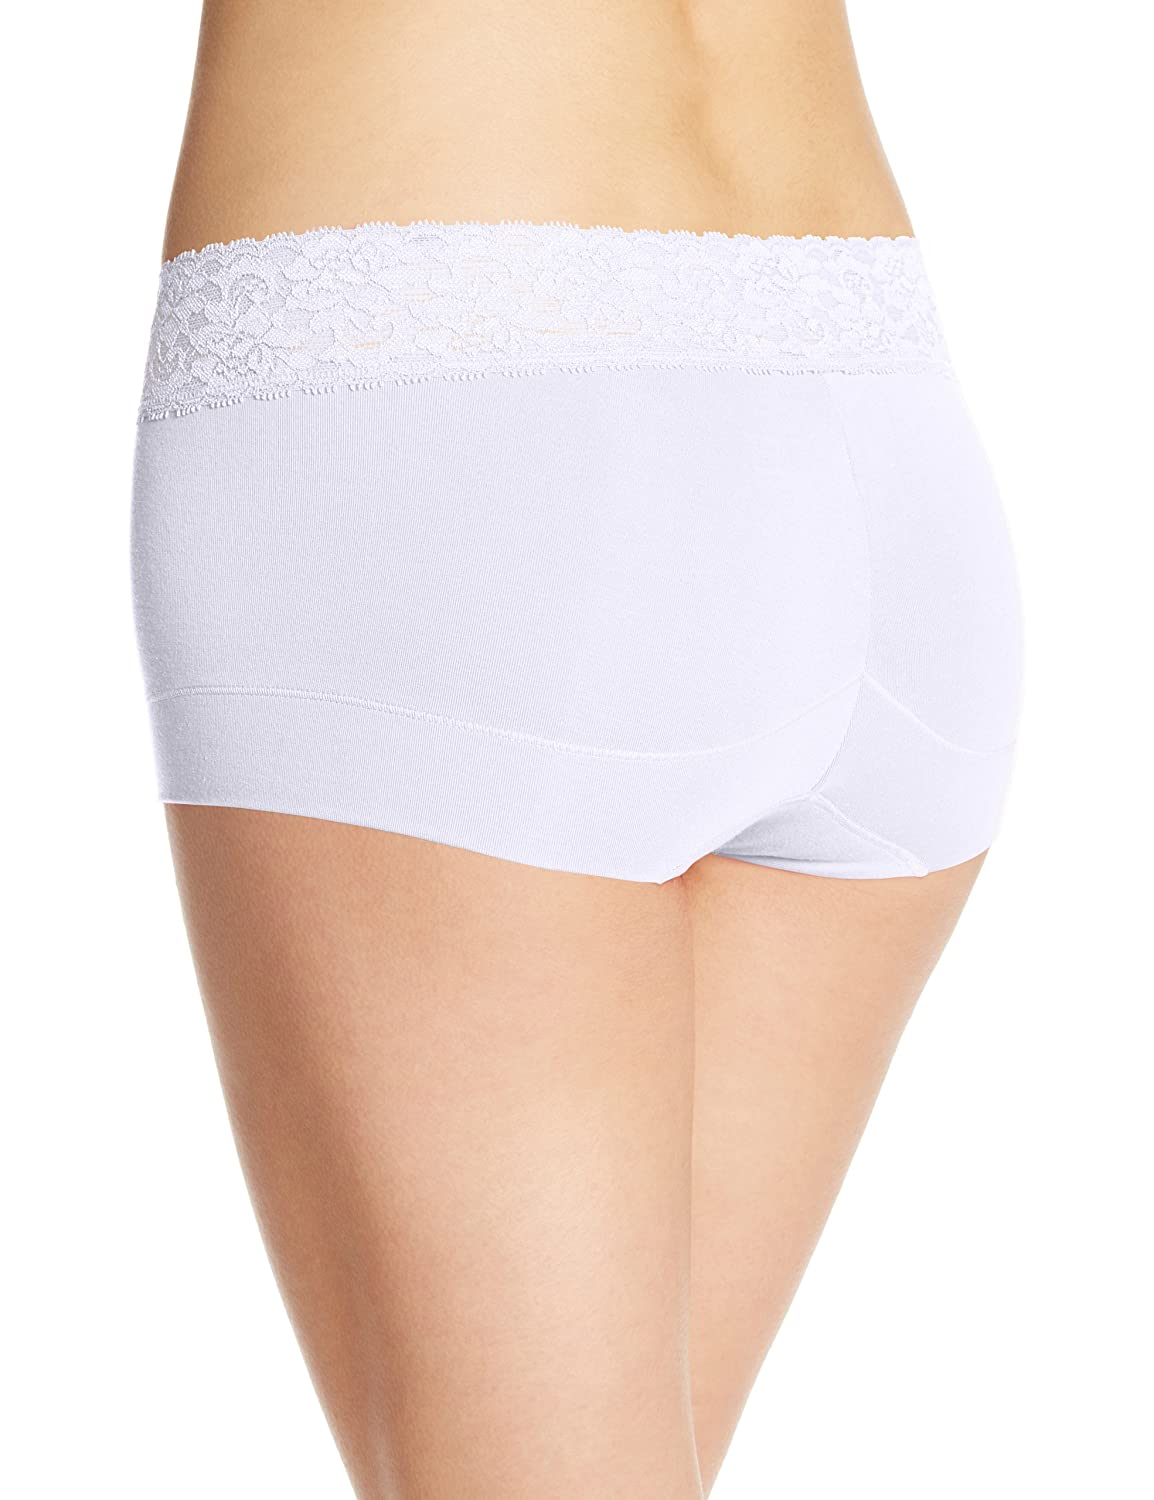 8be3b4bc8 Maidenform Women s Dream Cotton with Lace Boyshort at Amazon Women s  Clothing store